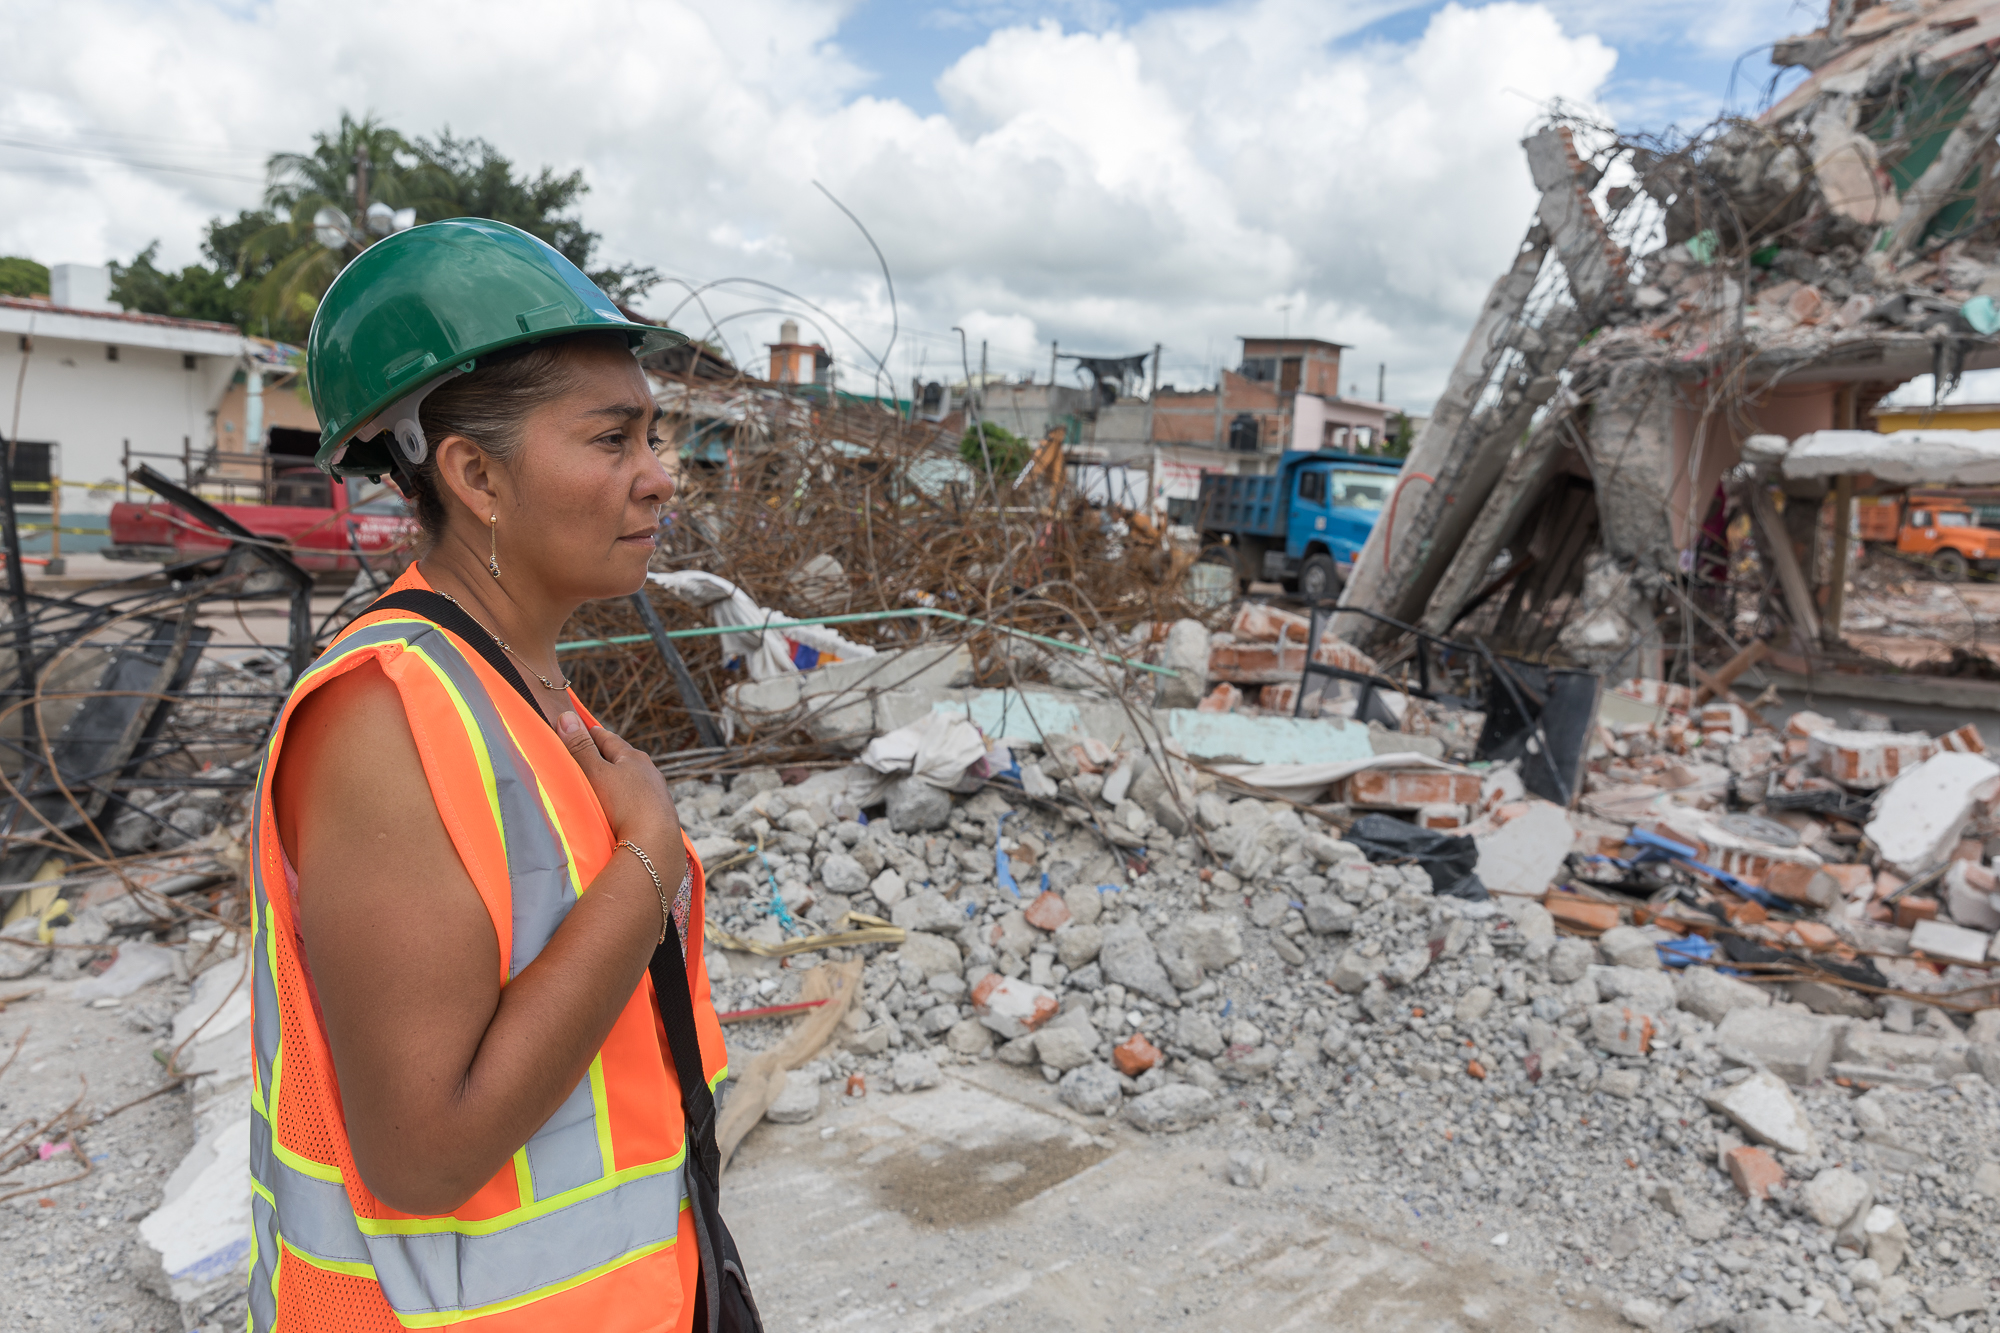 Verónica Bravo Santamaria looking at her home as it is being demolished. Six people lived in the house including her husband, her children Francisco Antonio and Mari José, and her in-laws.They are currently sleeping in their truck.PHOTO: Francisco Alcala Torreslanda